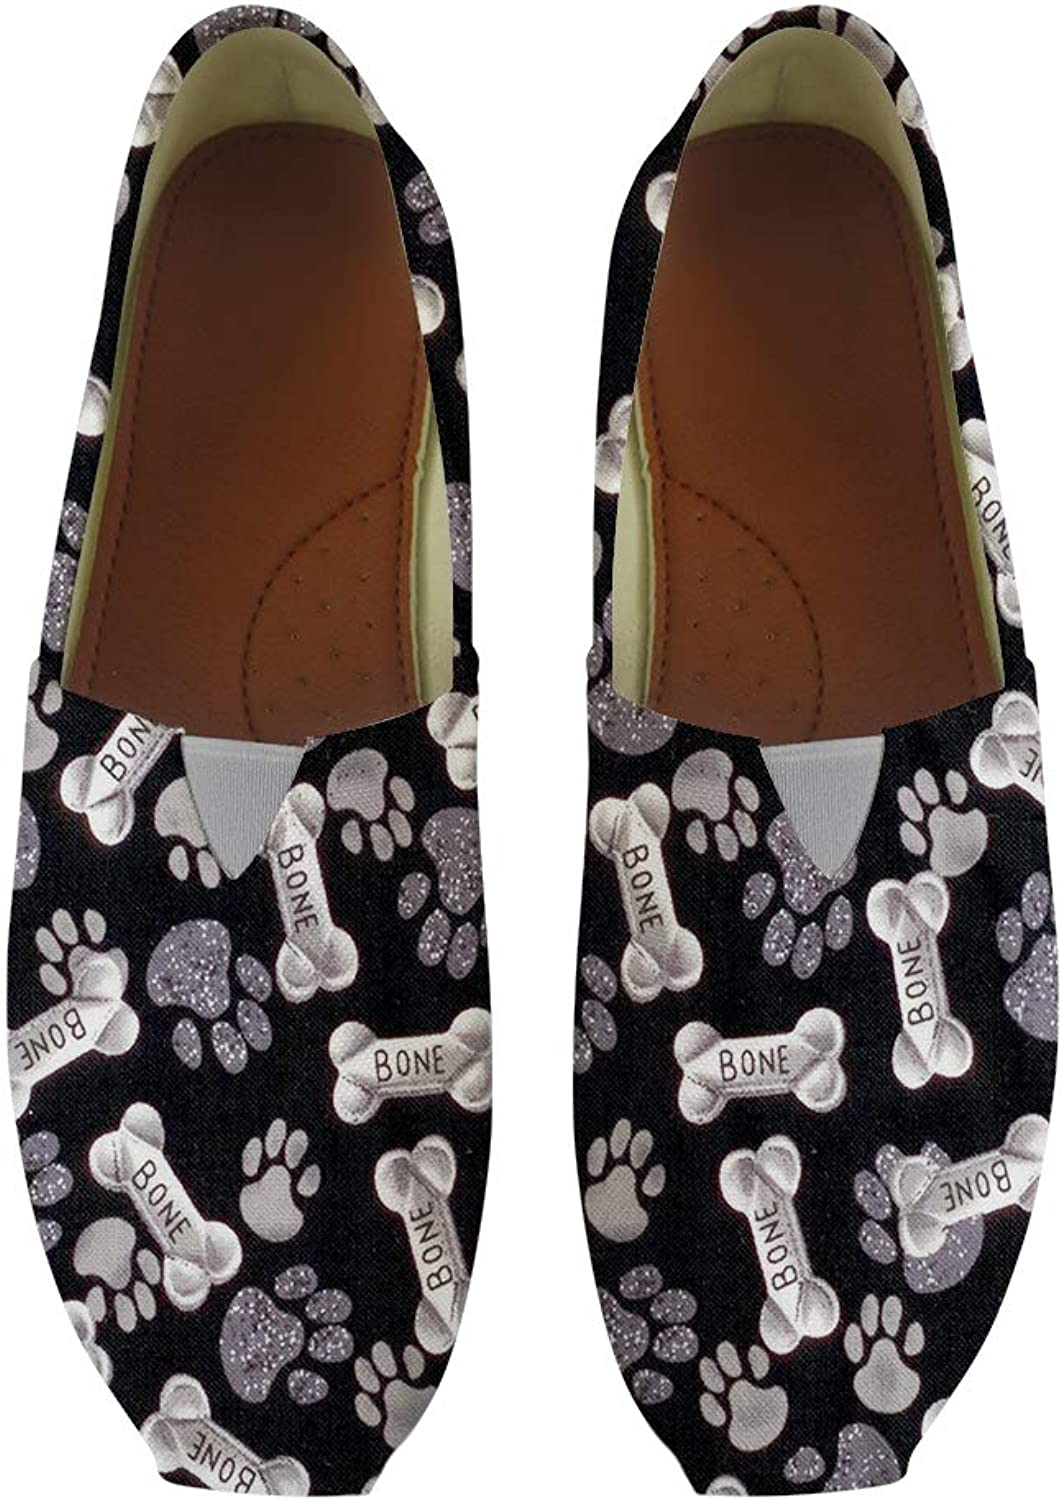 Owaheson Classic Canvas Slip-On Lightweight Driving shoes Soft Penny Loafers Men Women Bones Dog Paw Prints